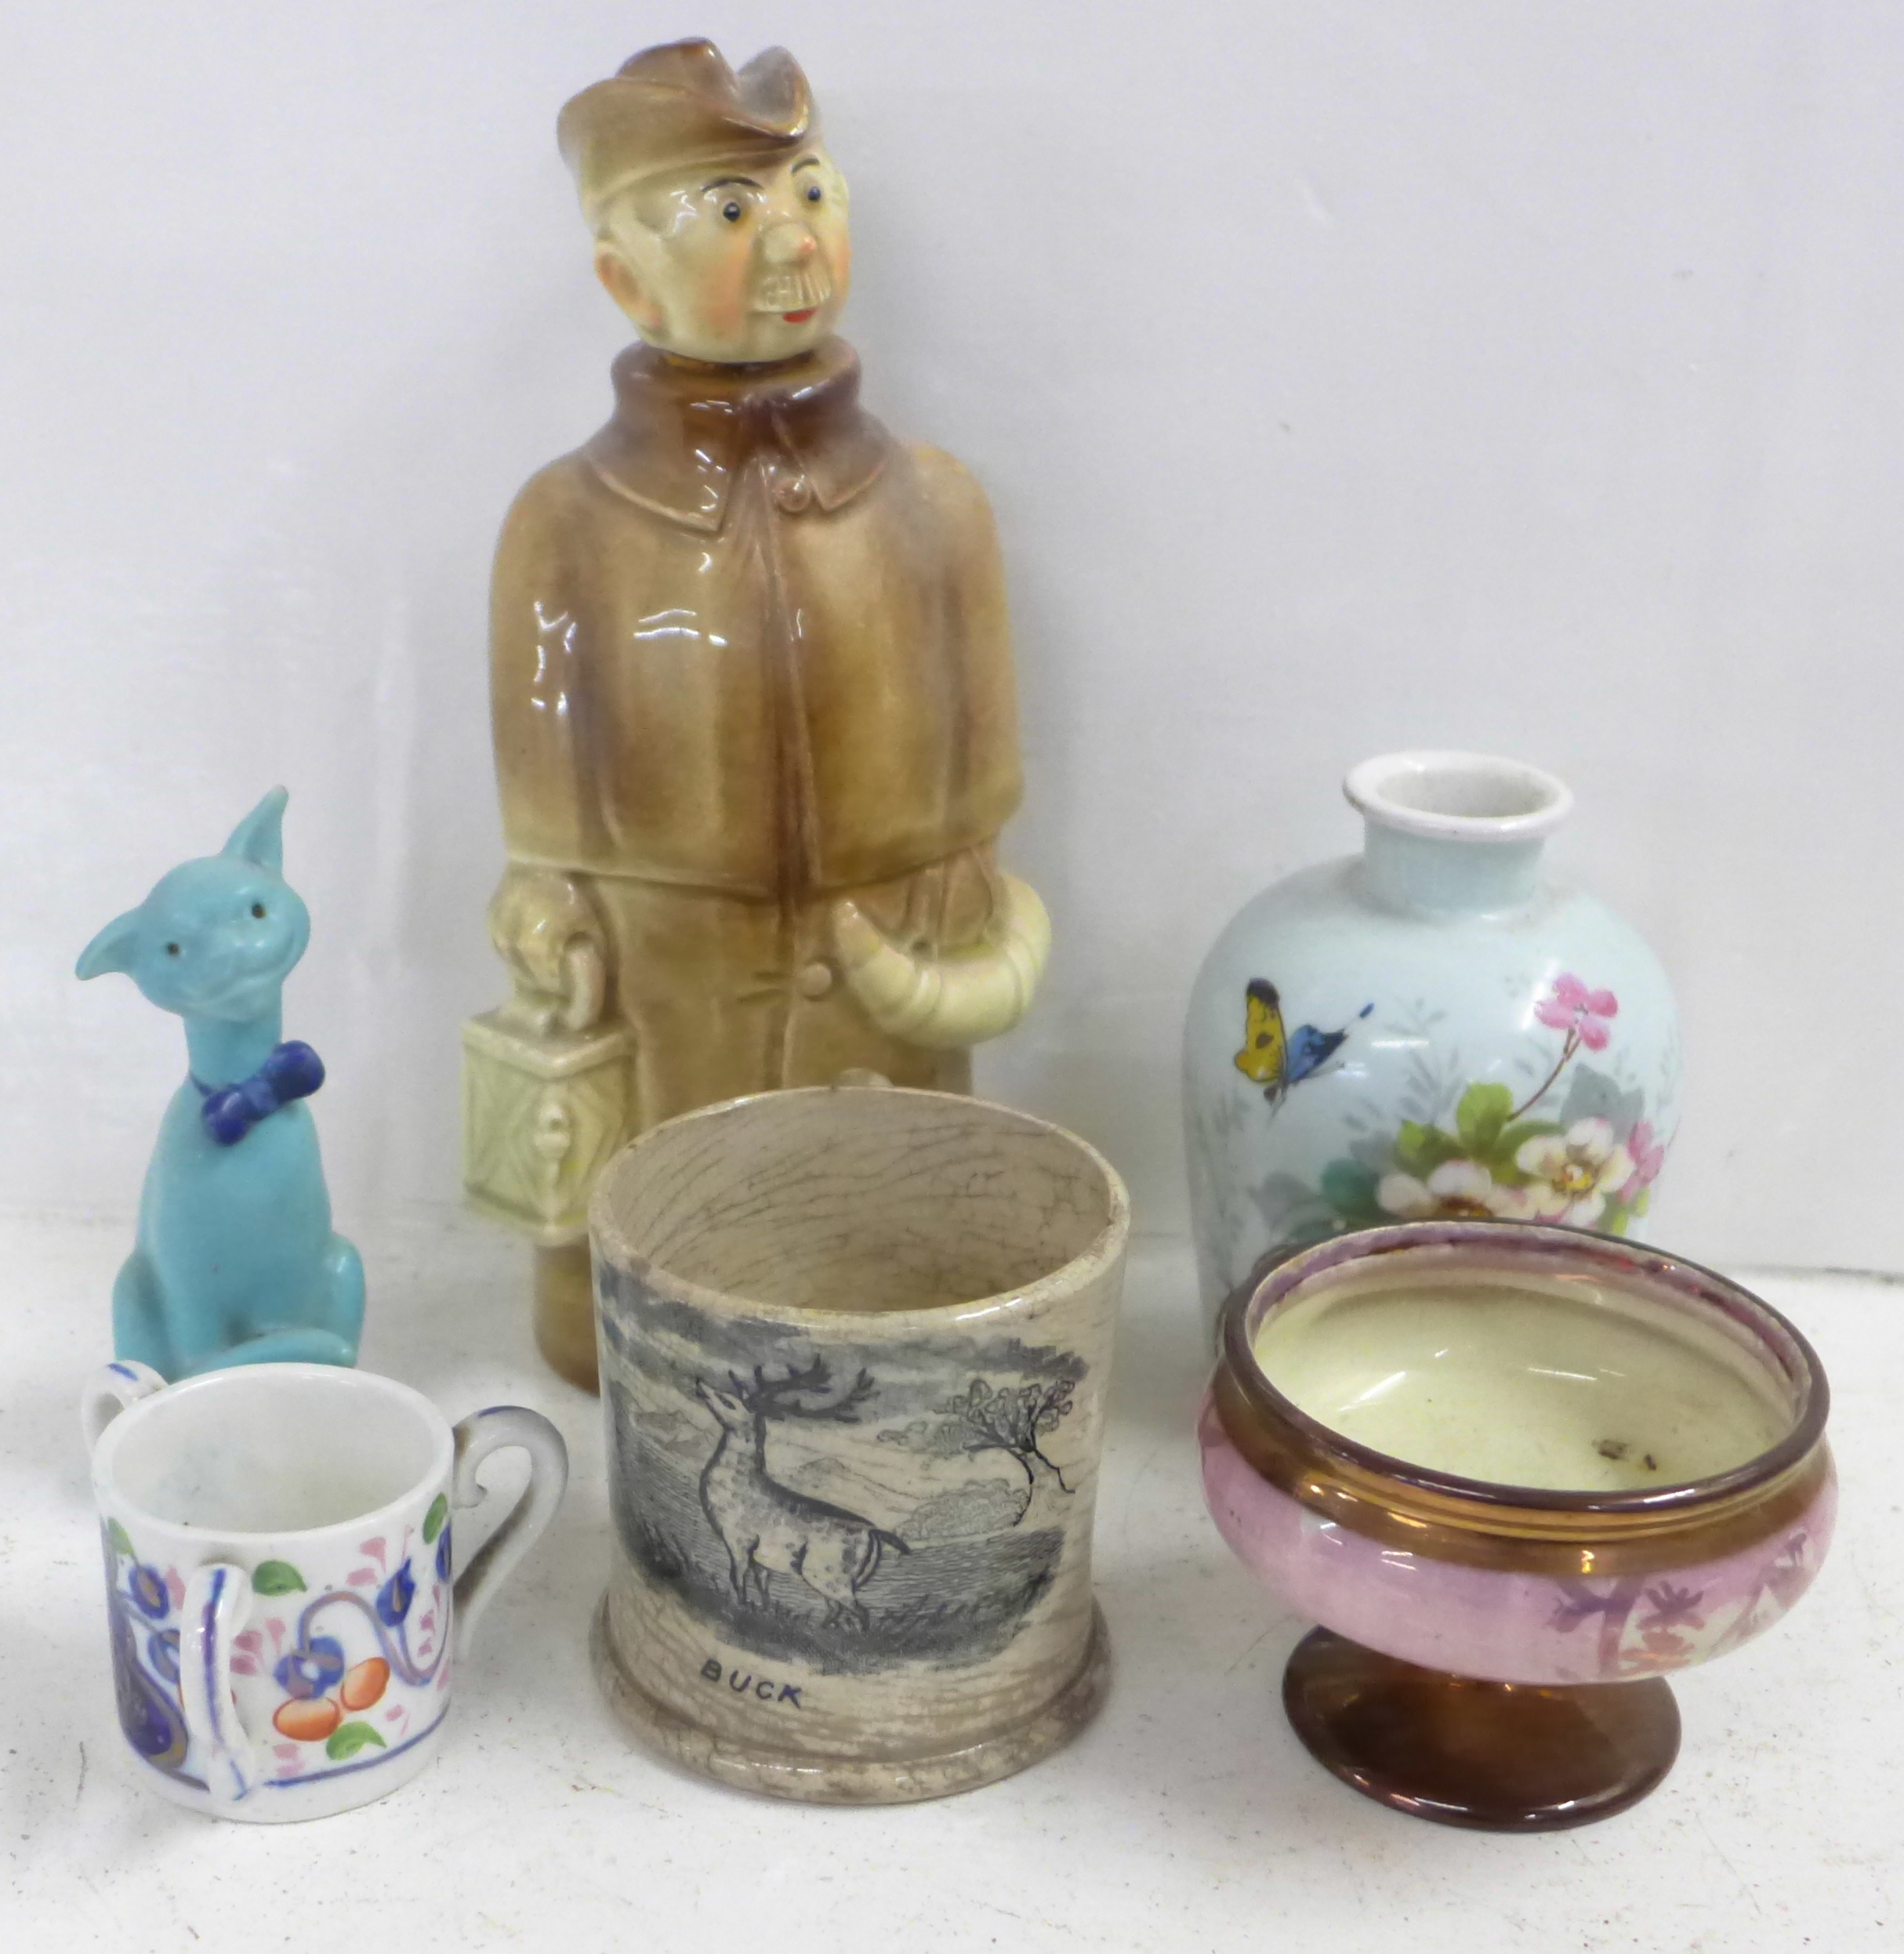 A small lustre jug, a small lustre comport, a French vase, a mug marked 'Buck', a Grafton China